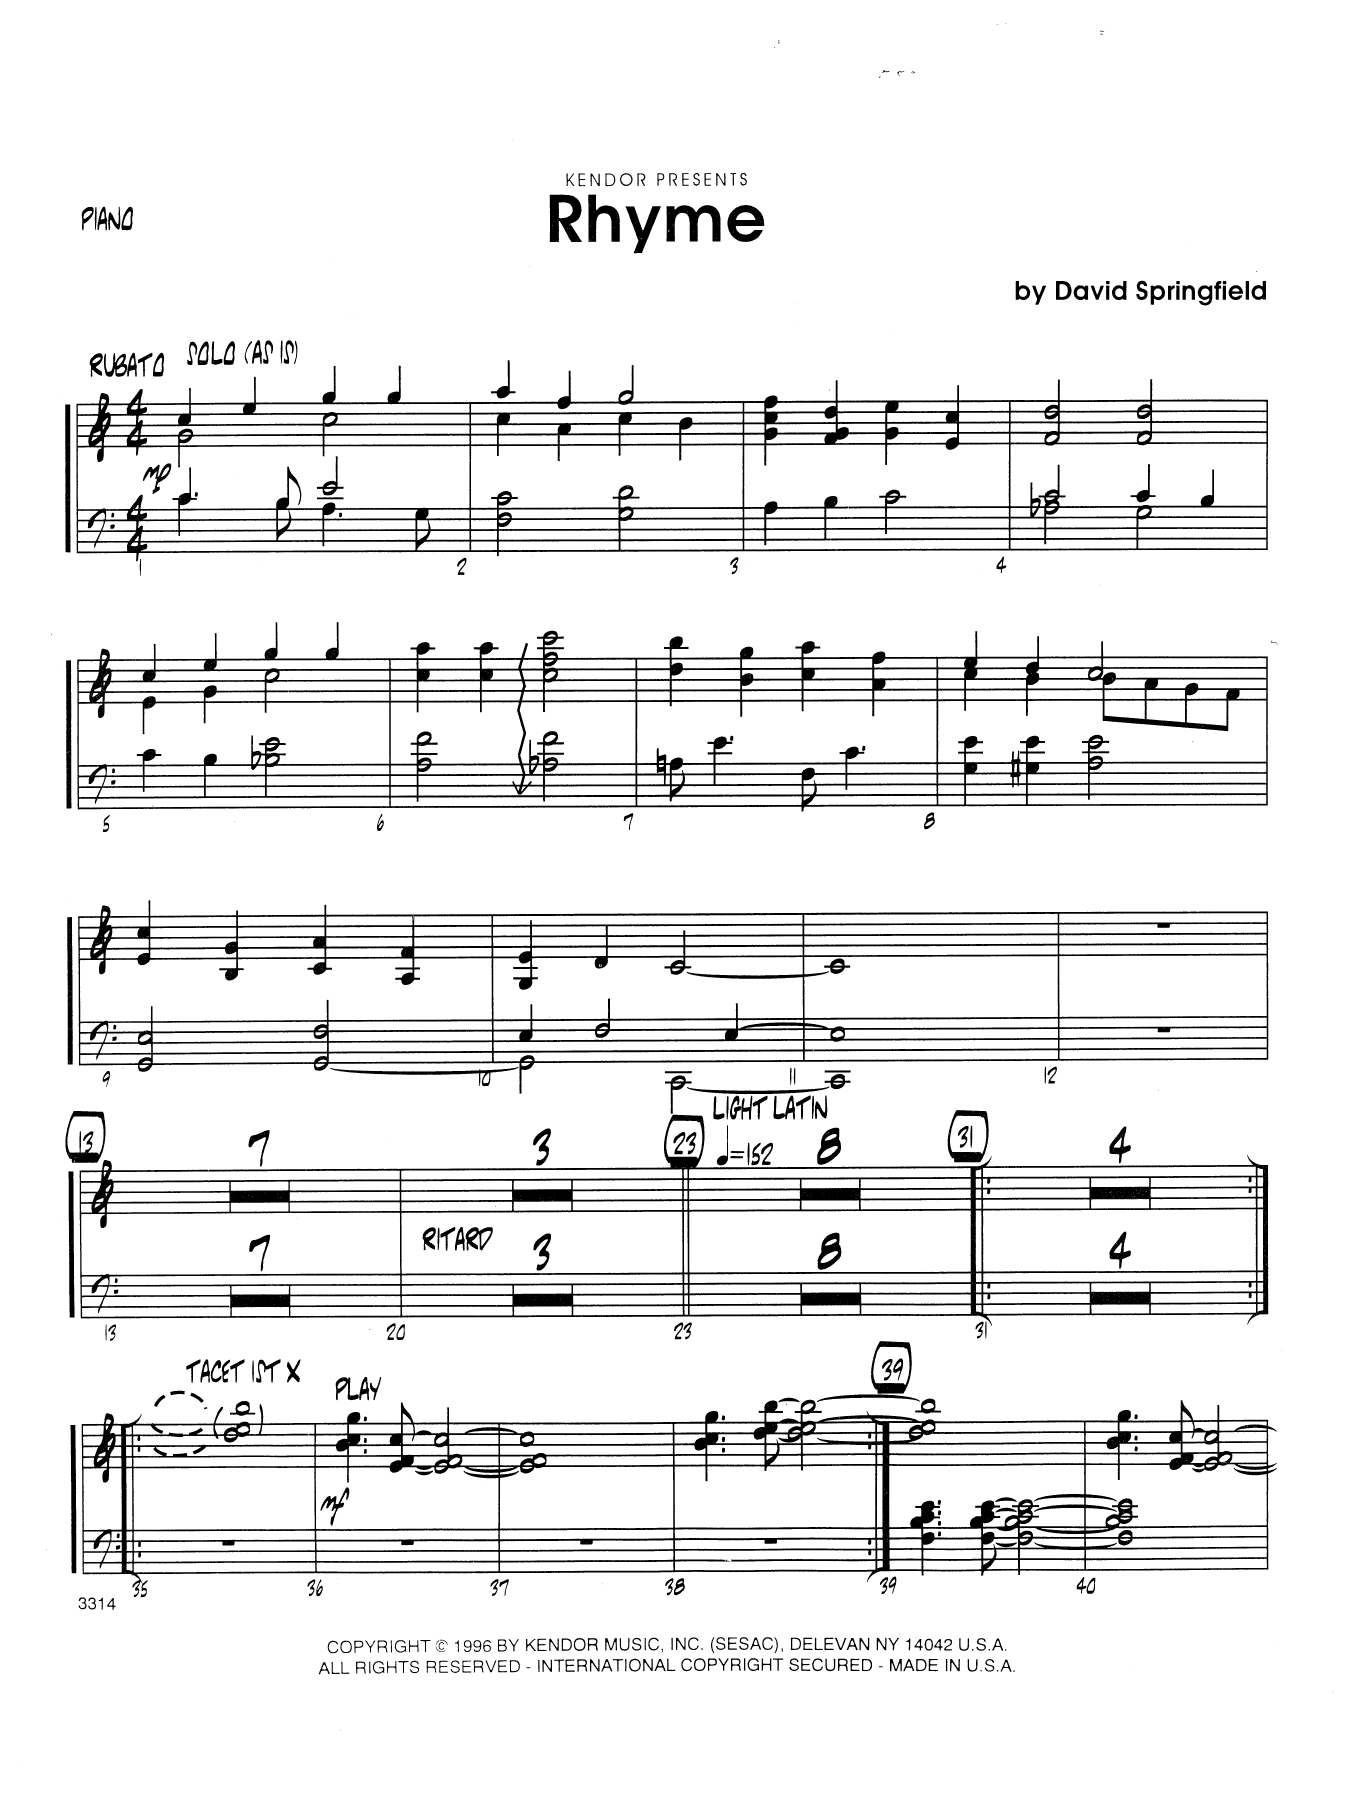 Rhyme - Piano Sheet Music